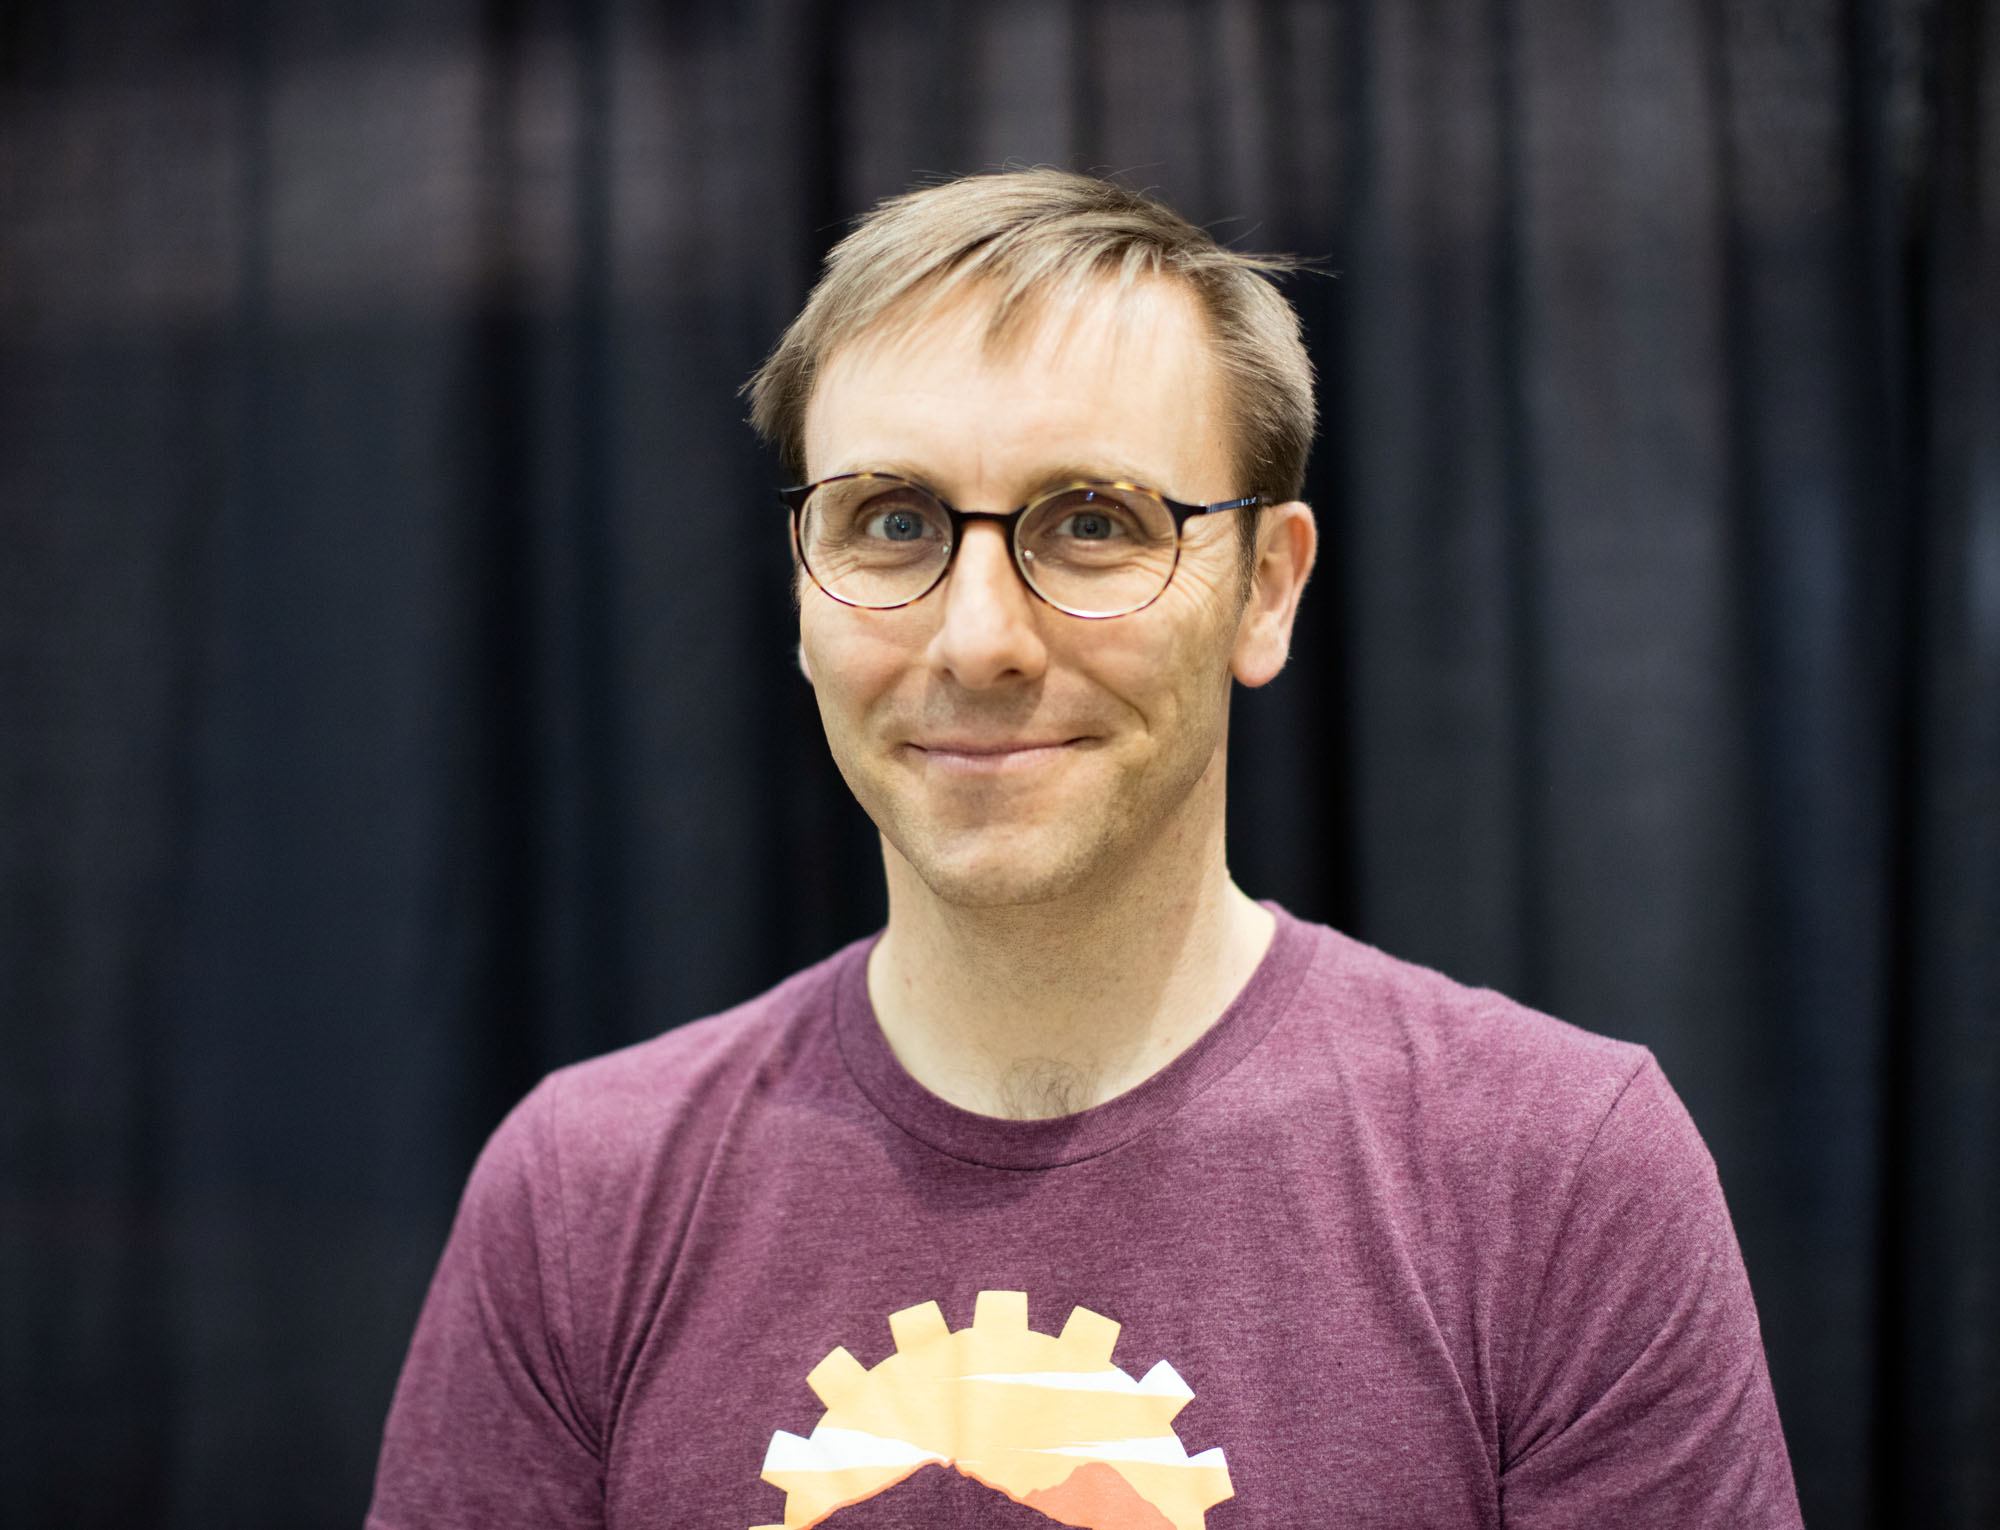 marty-railsconf-2016.jpg